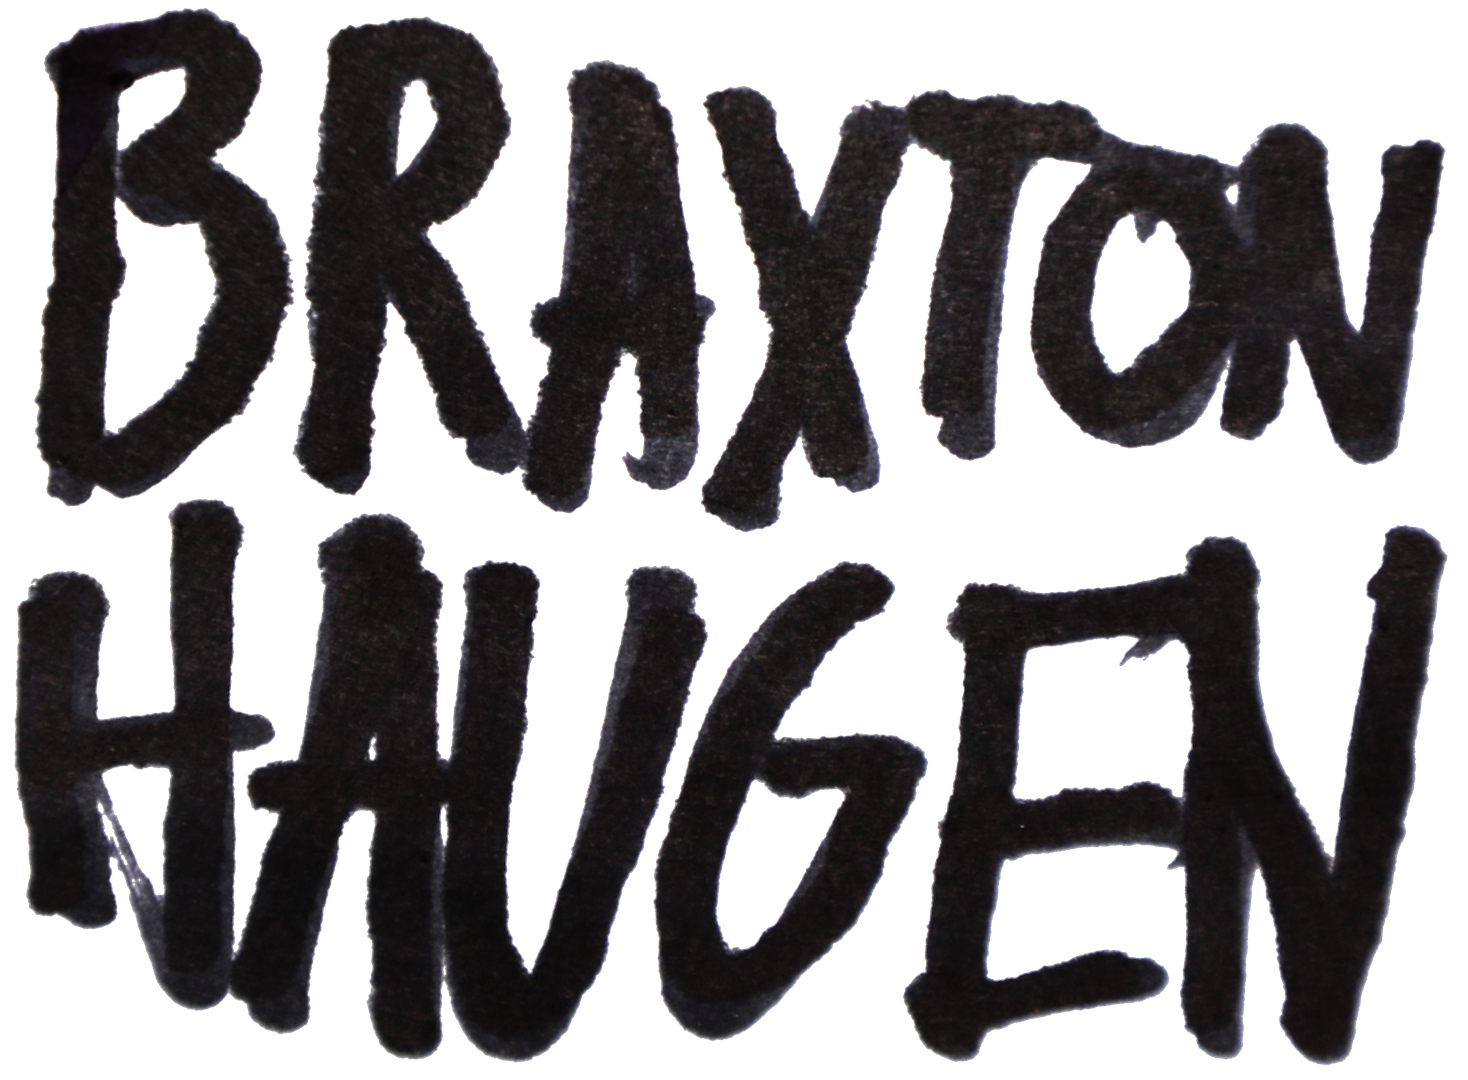 Braxton Haugen – Official Website